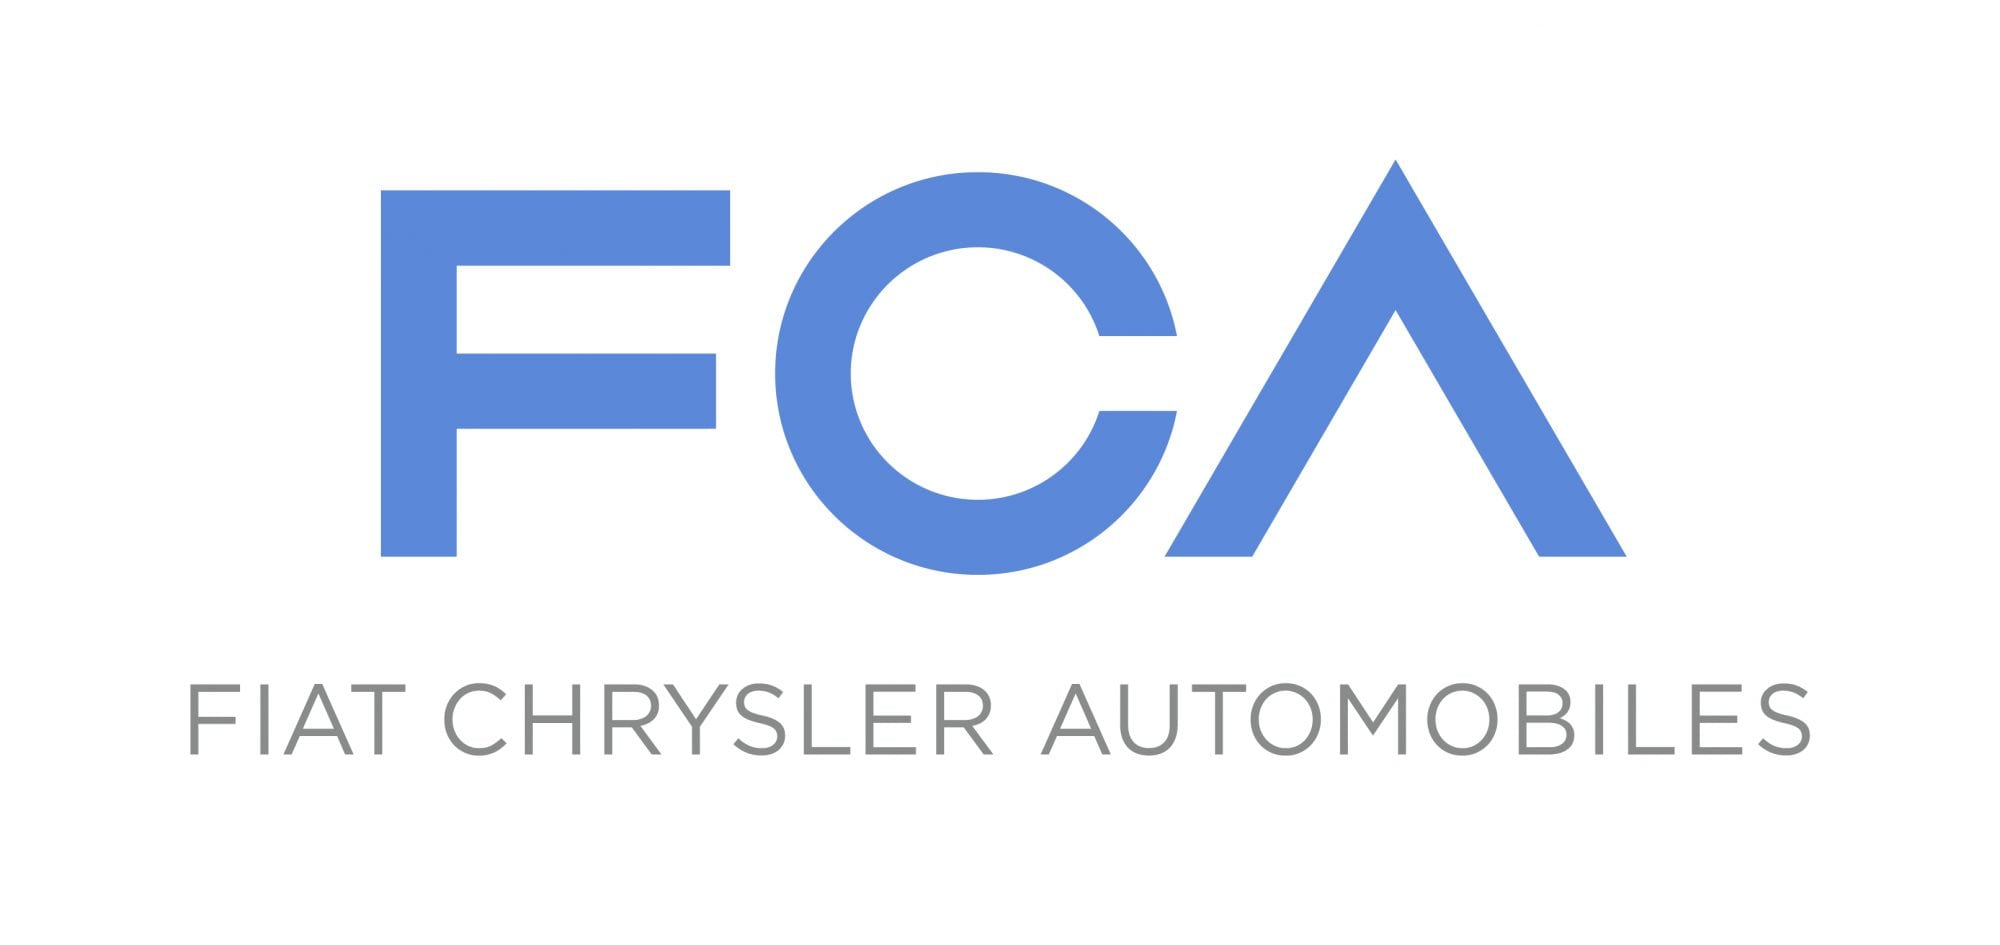 New Logo Combines Fiat And Chrysler Into One Too Soon